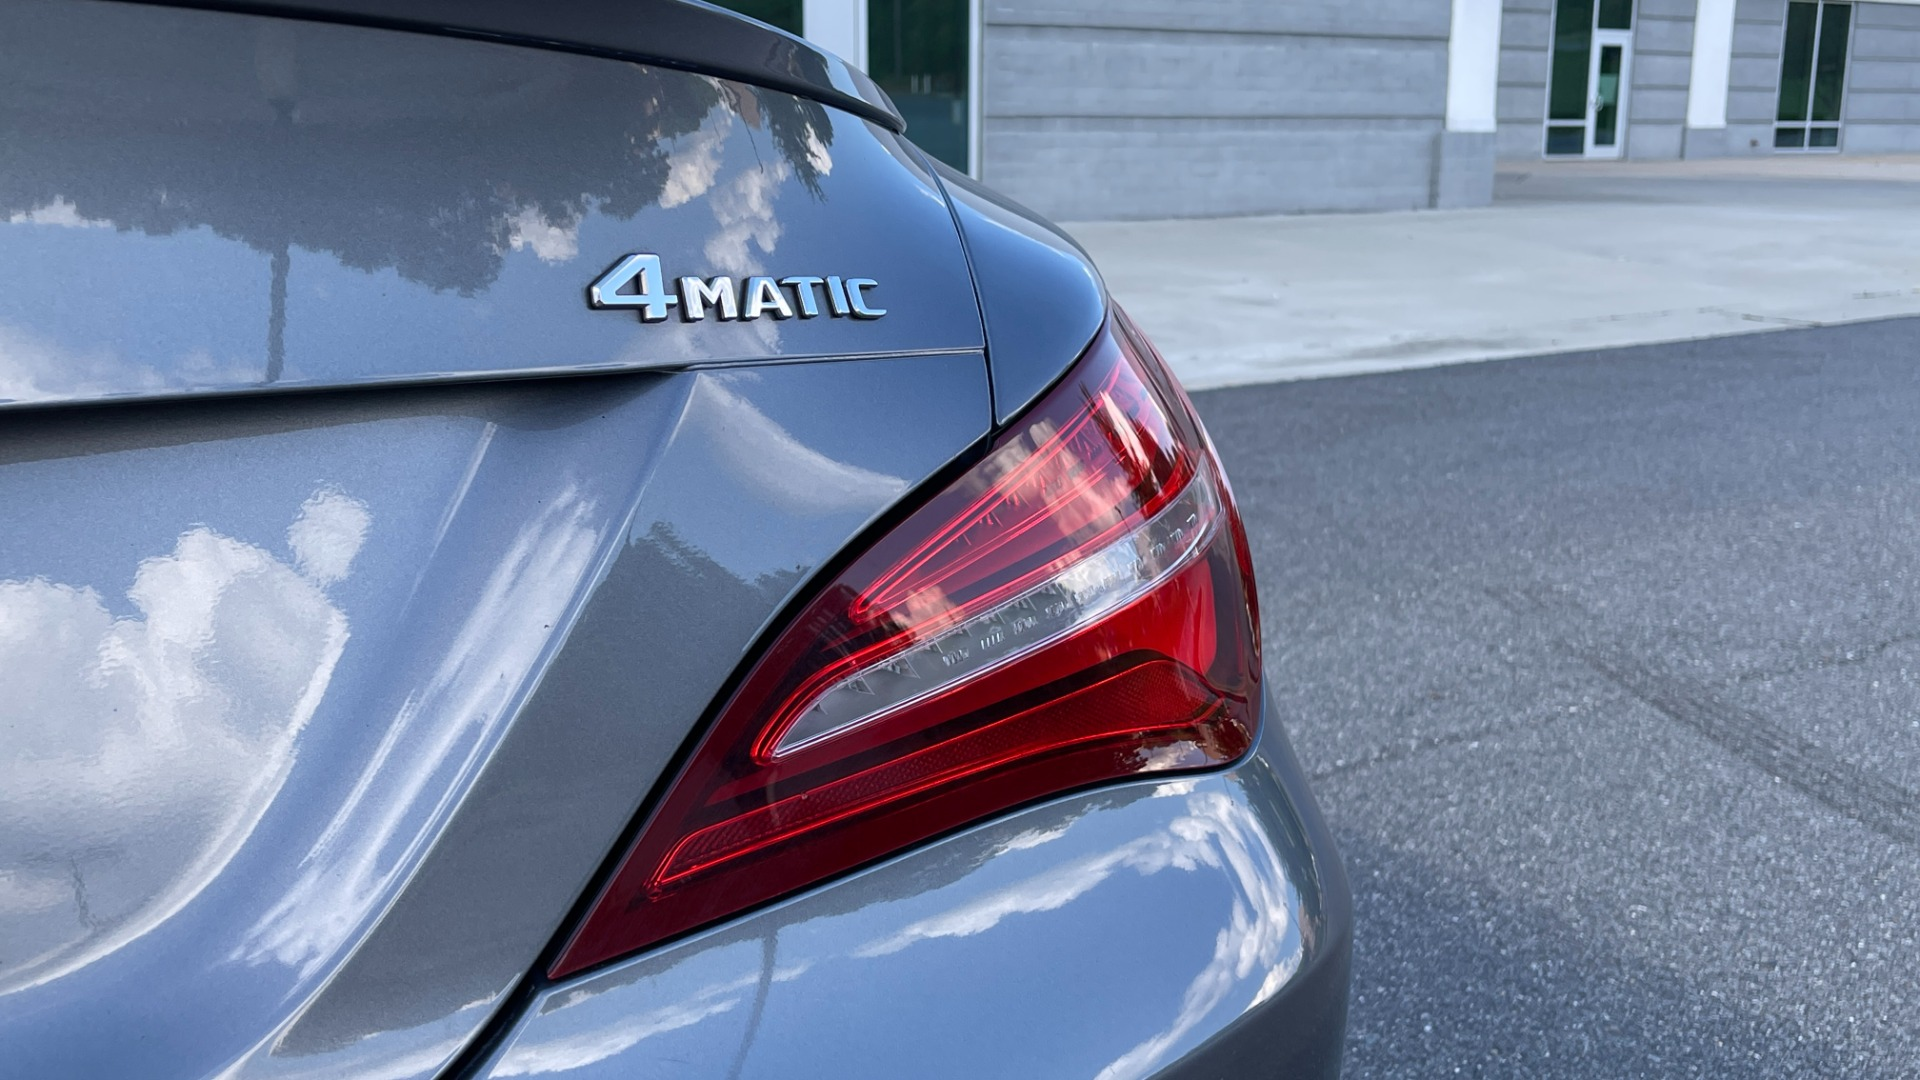 Used 2019 Mercedes-Benz CLA 250 4MATIC PREM & CONV PKG / APPLE / PANO-ROOF / H/K SND / REARVIEW for sale $29,795 at Formula Imports in Charlotte NC 28227 20